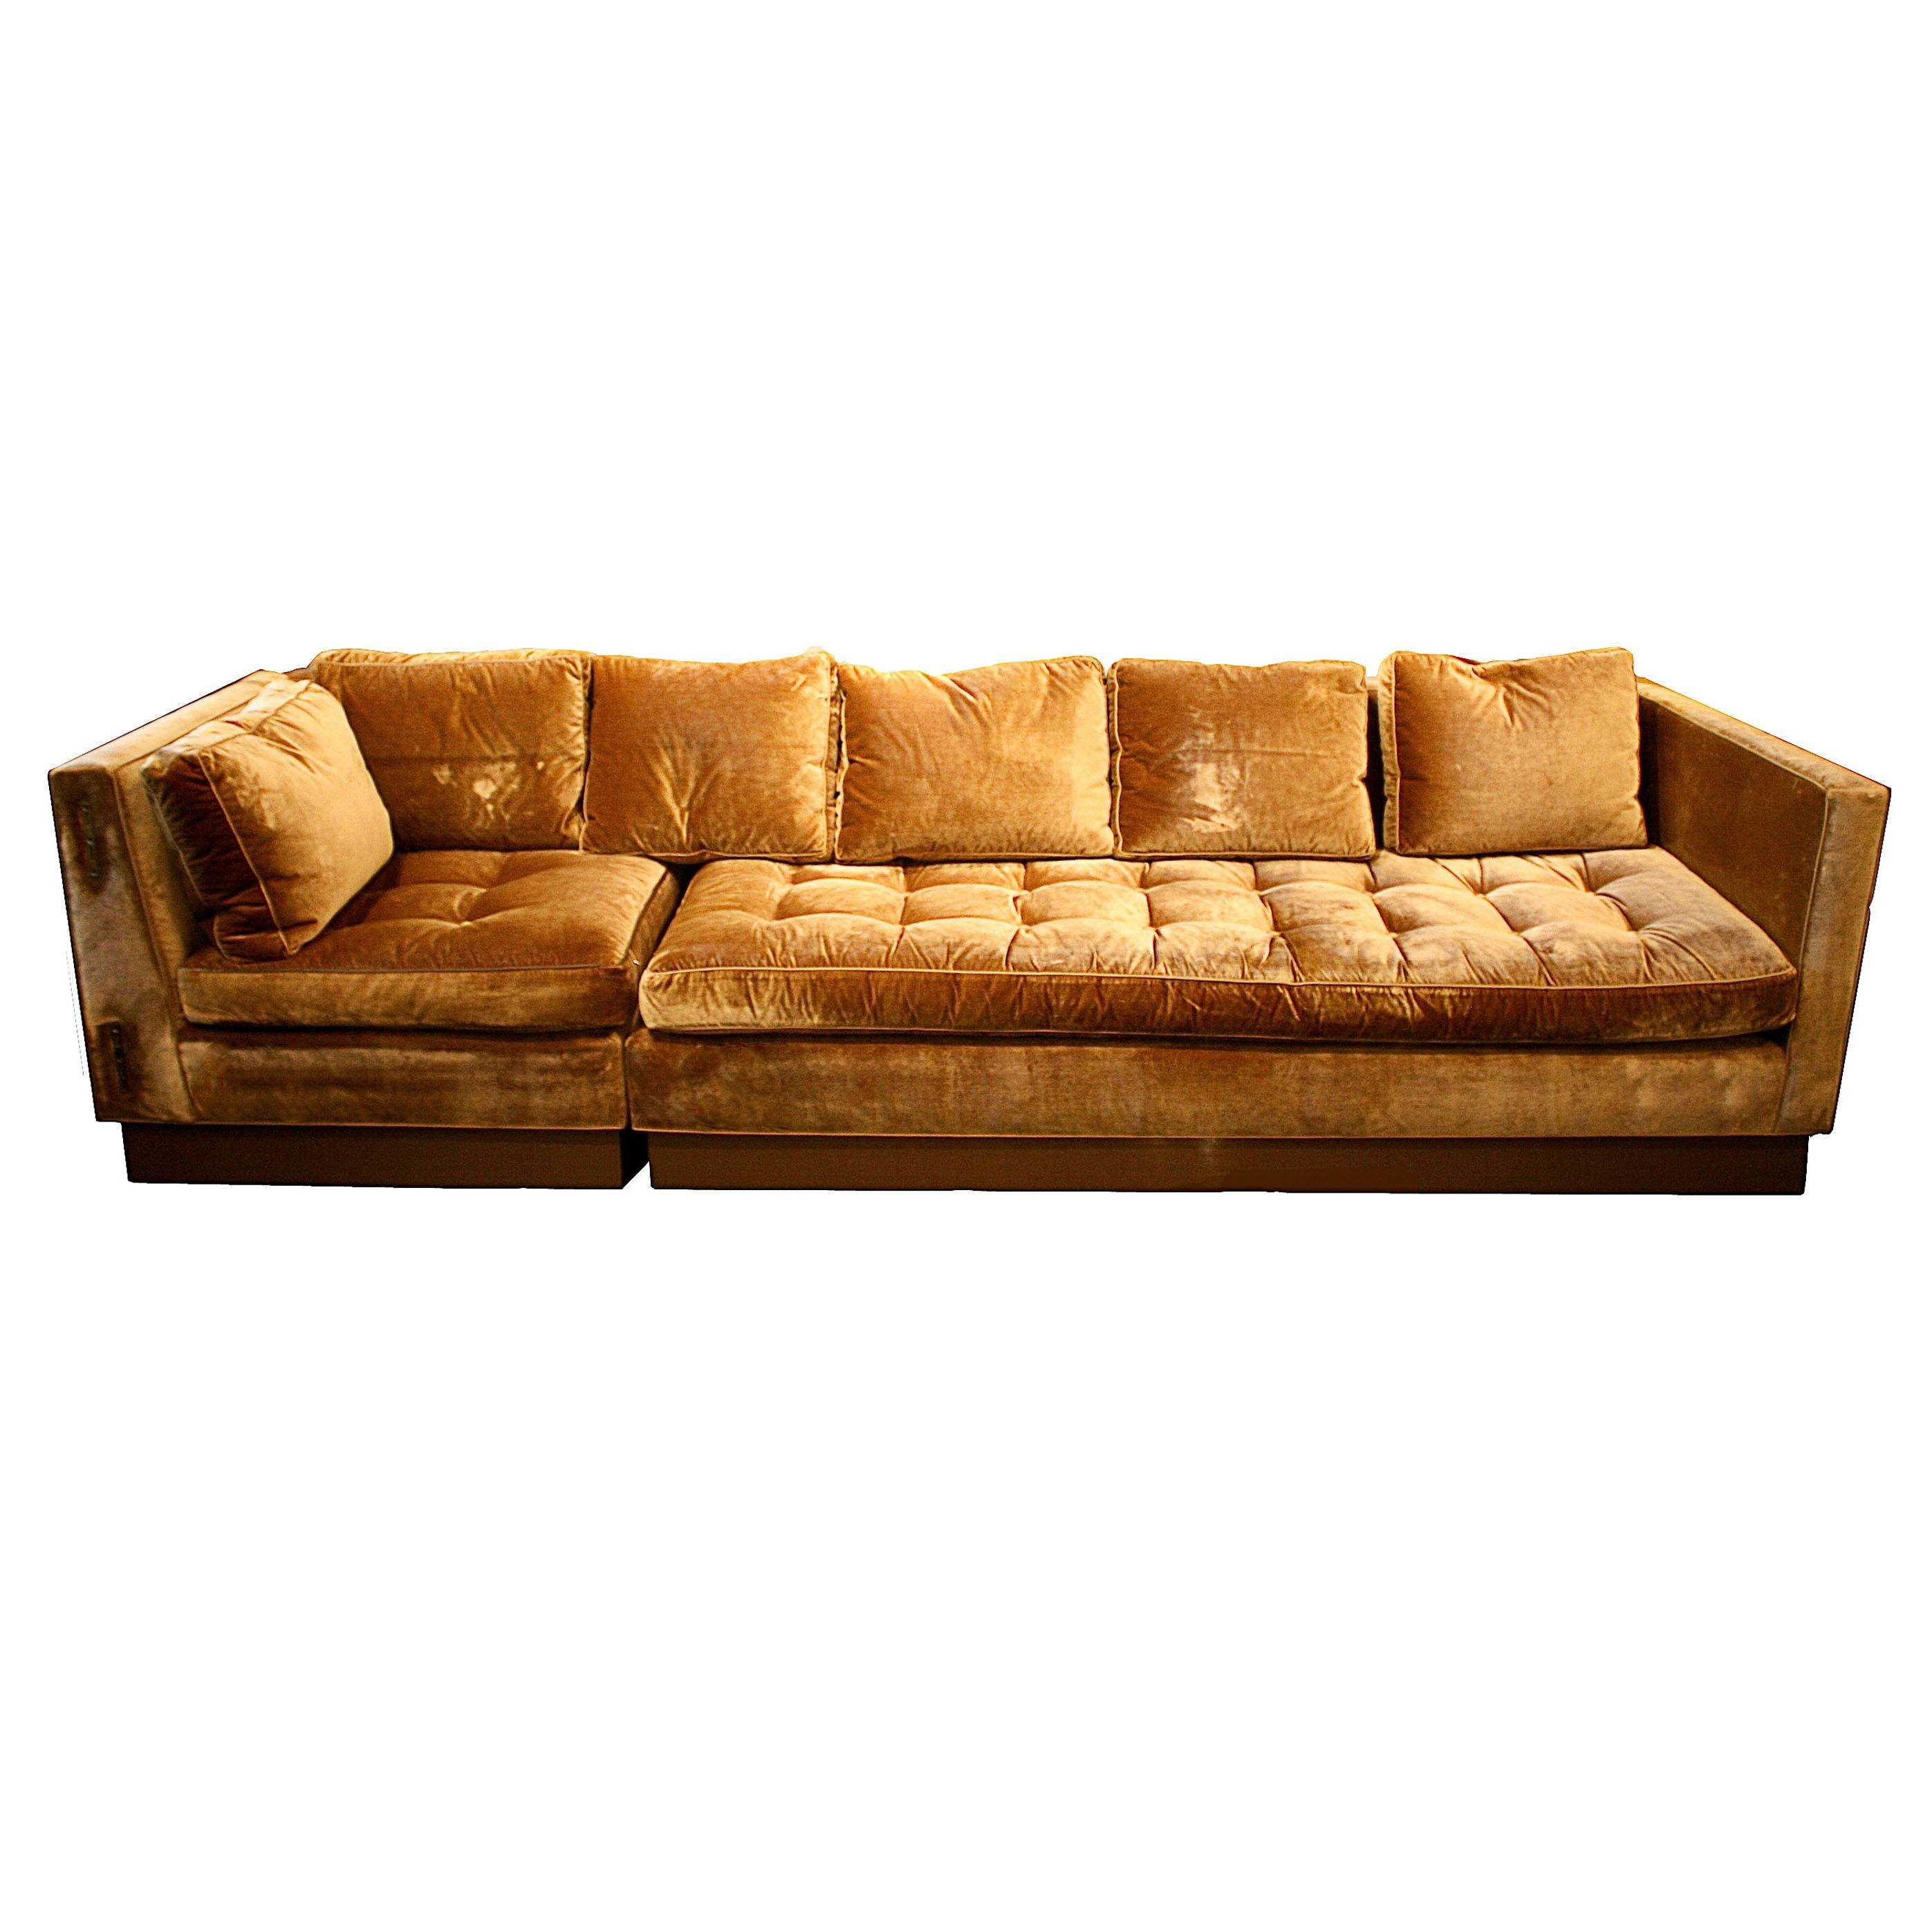 25 The Best Gold Sectional Sofa  sc 1 st  Centerfieldbar.com : gold sectional sofa - Sectionals, Sofas & Couches